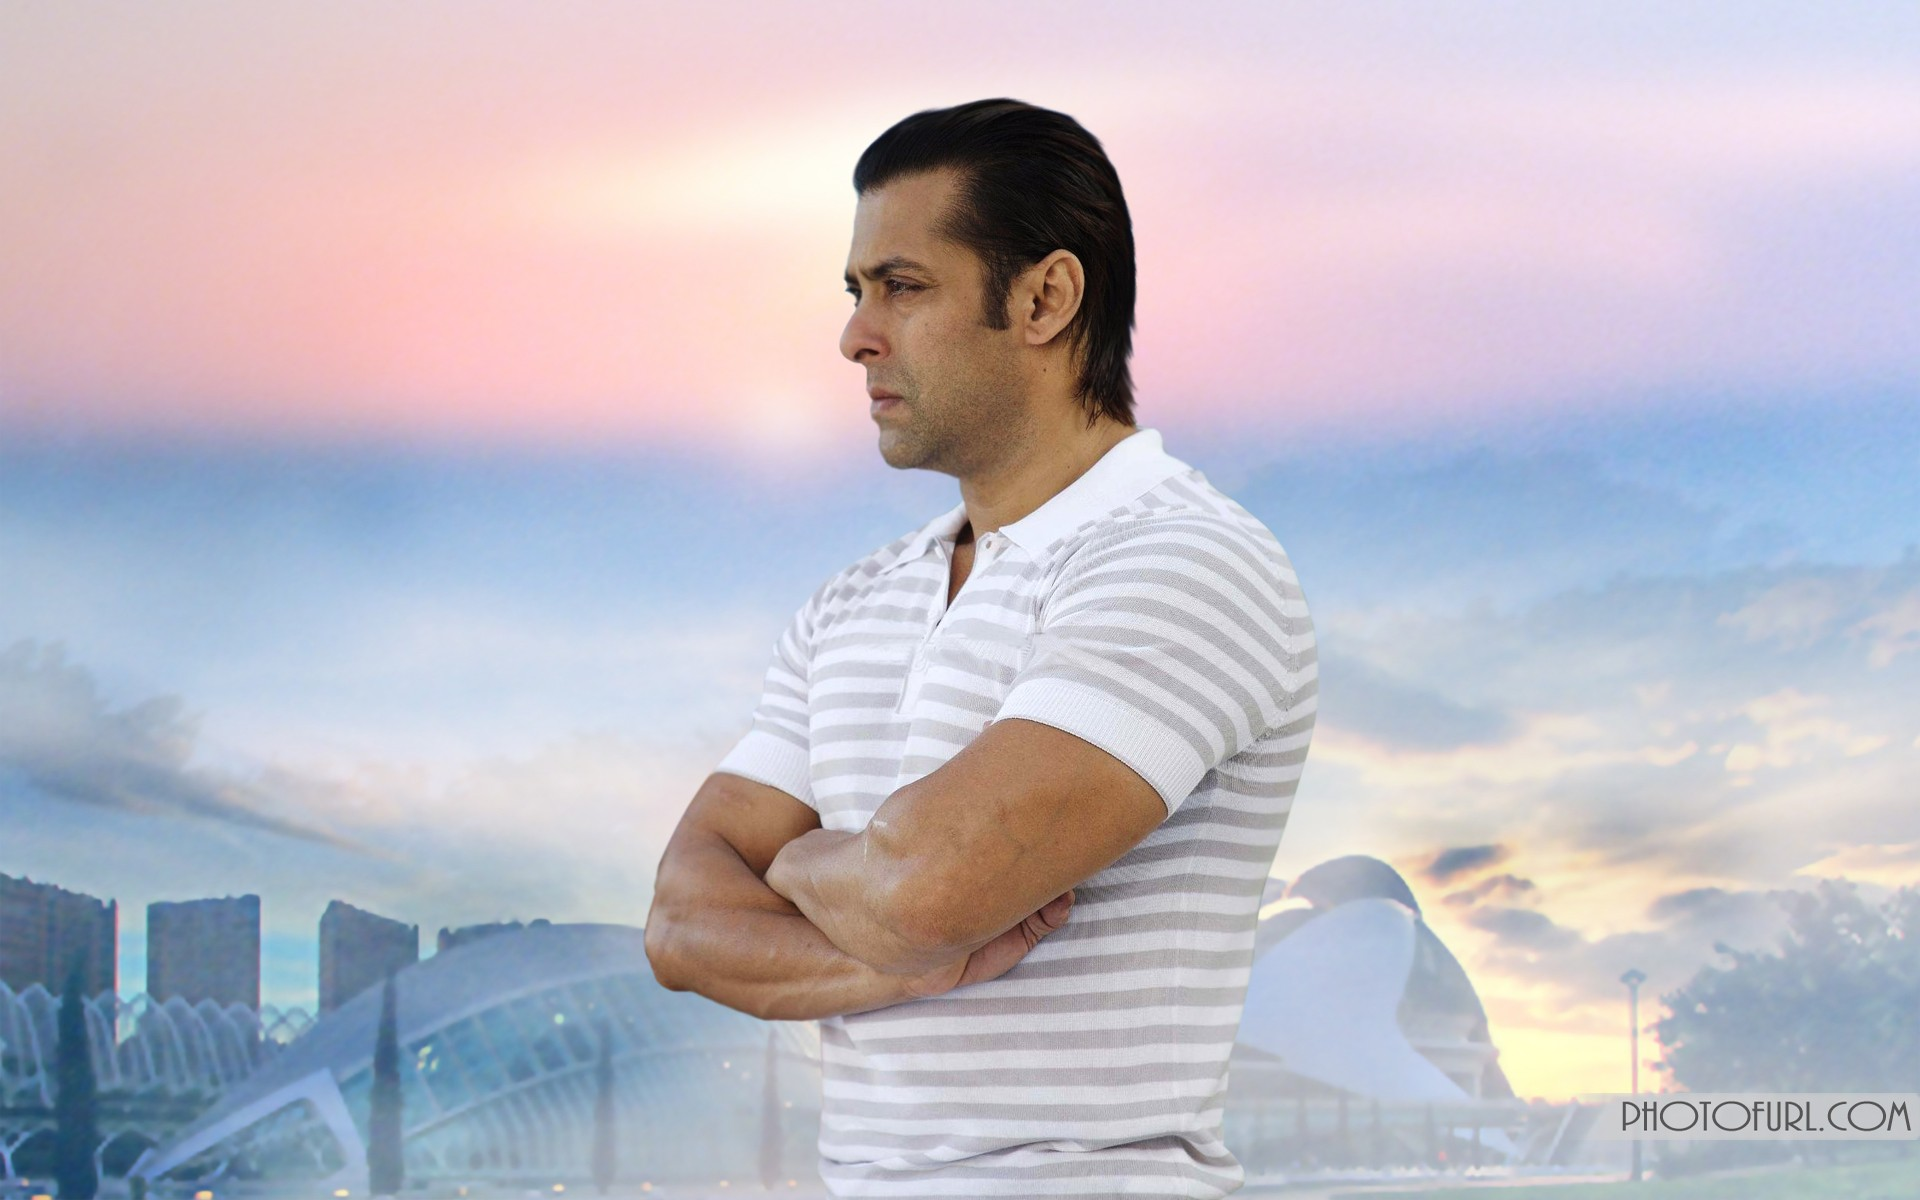 Salman Khan Wallpapers, Pictures, Images